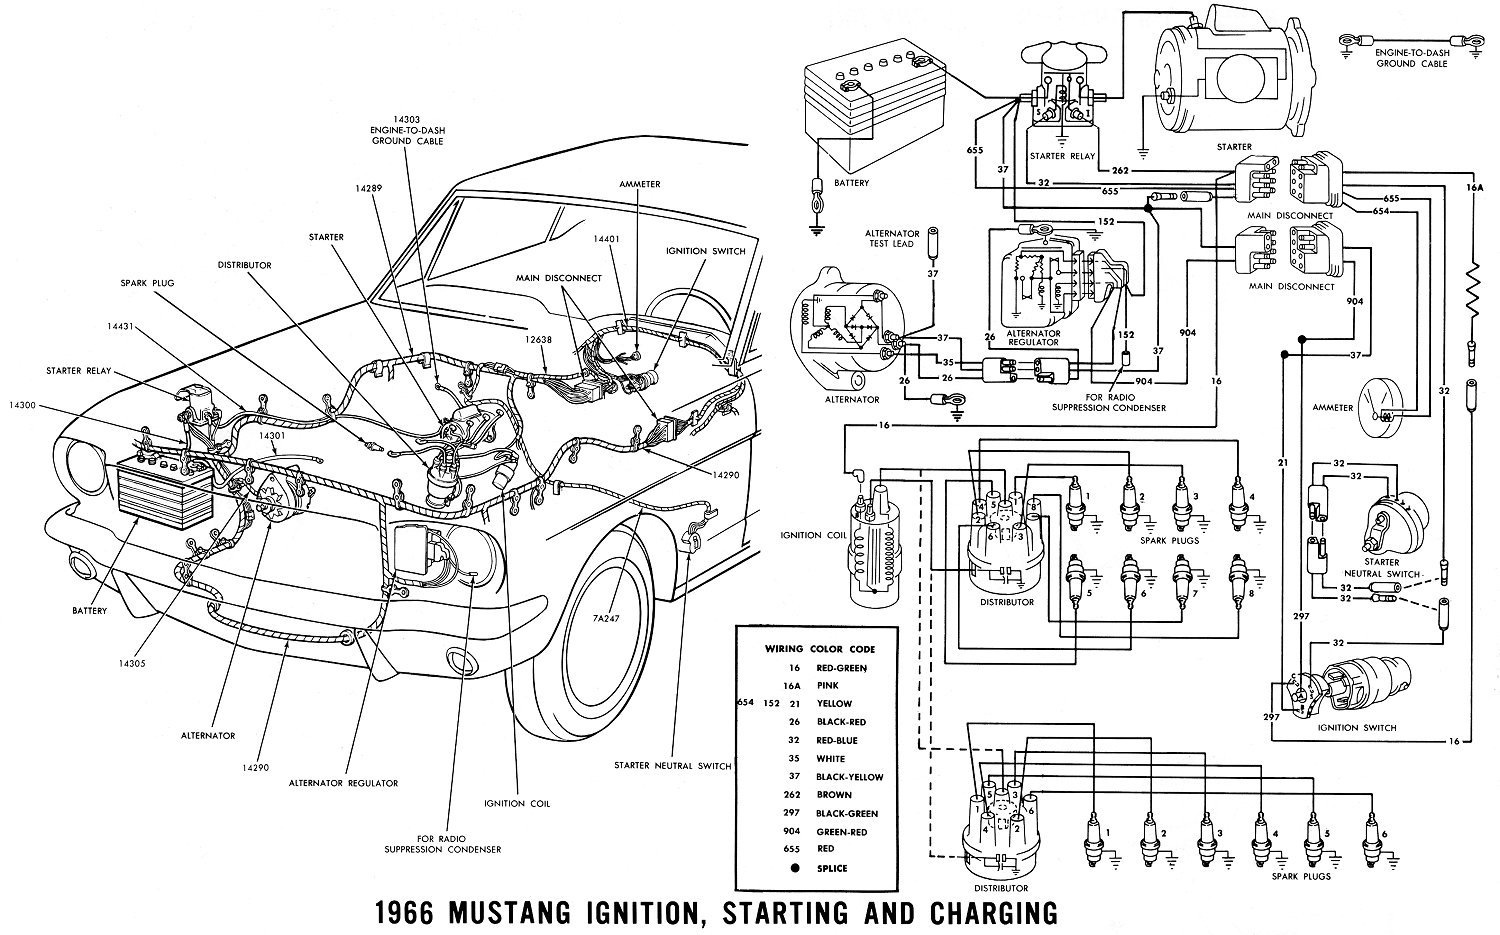 68 mustang engine wiring diagram